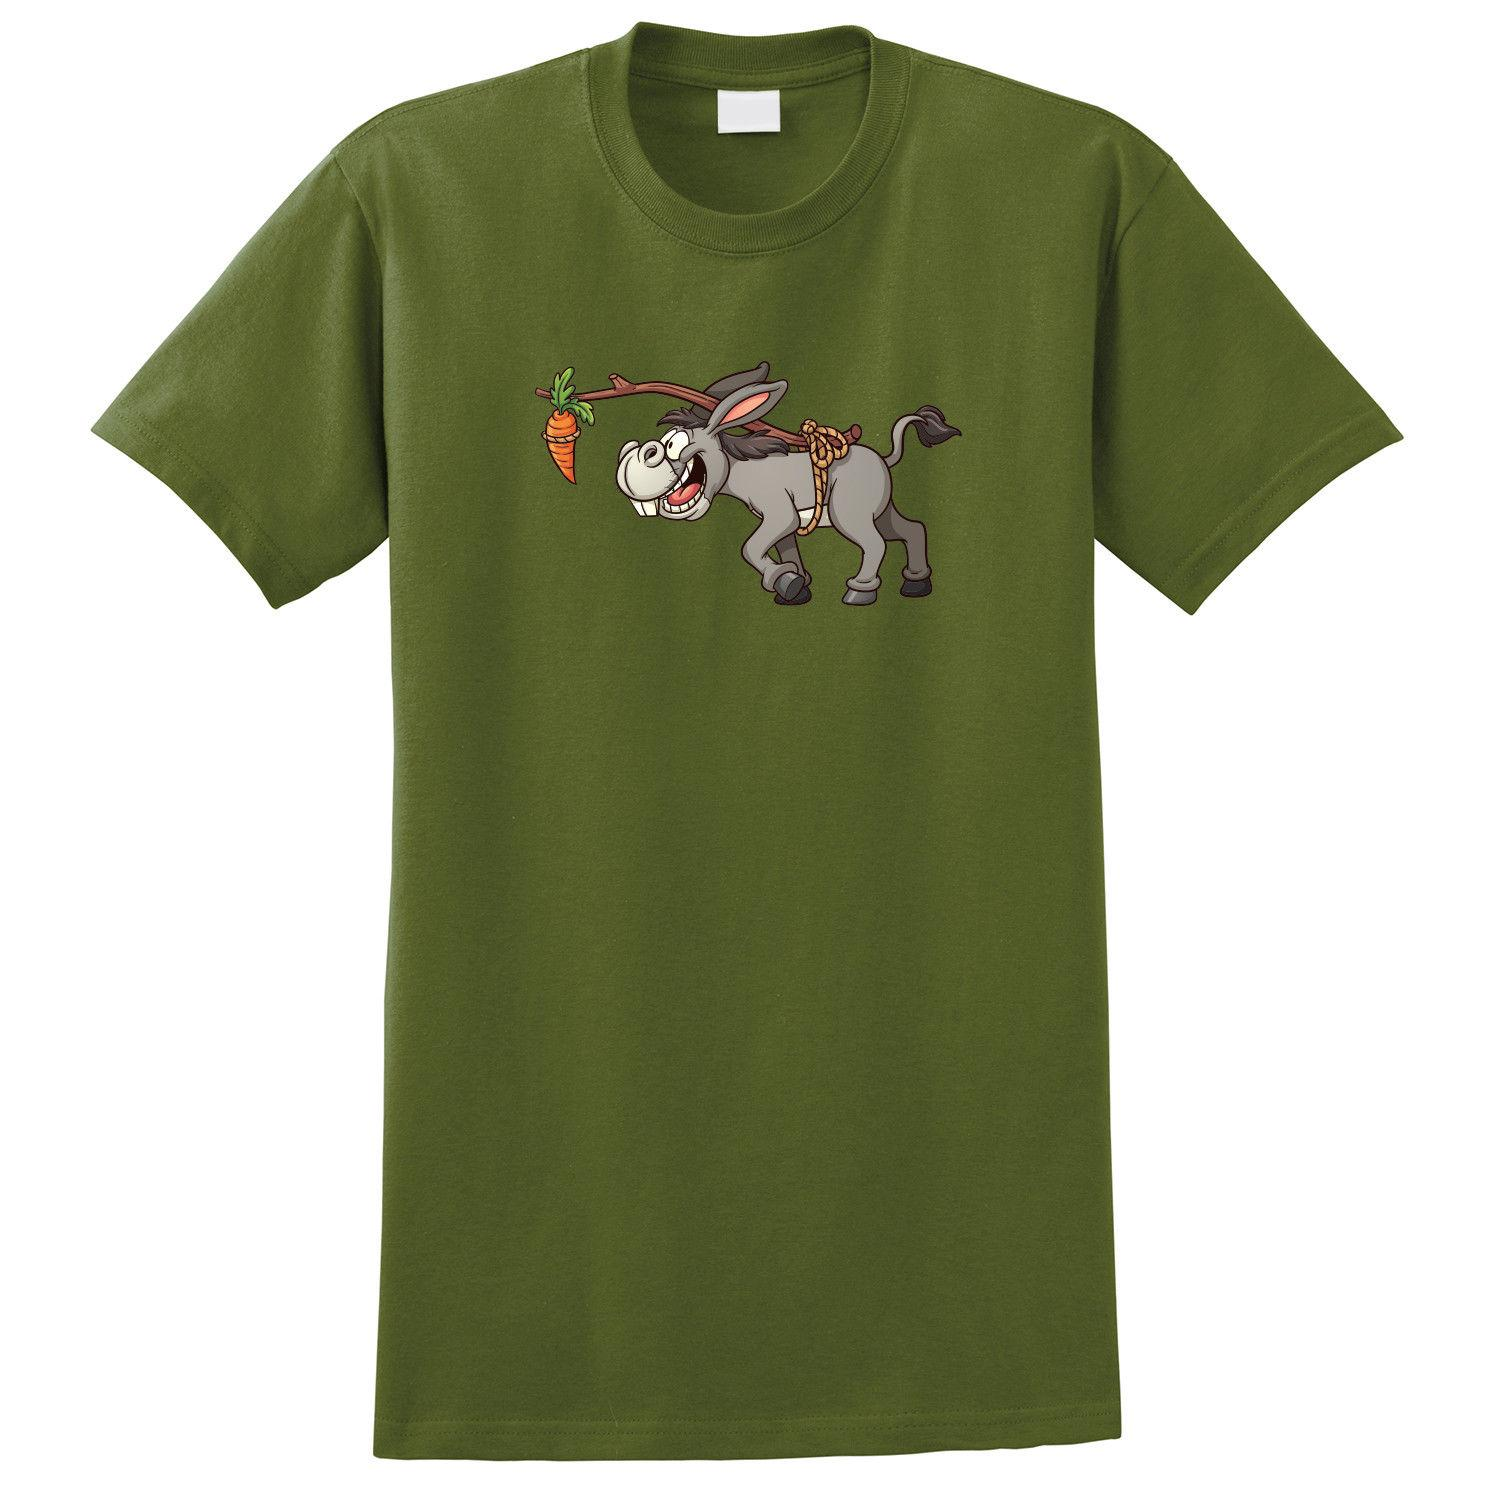 97527faae Funny Donkey Carrot Cartoon Print T Shirt Funny Unisex Casual Tshirt Gift T  Shirt A Day Retro Tee Shirts From Carenthusiast, $12.96| DHgate.Com